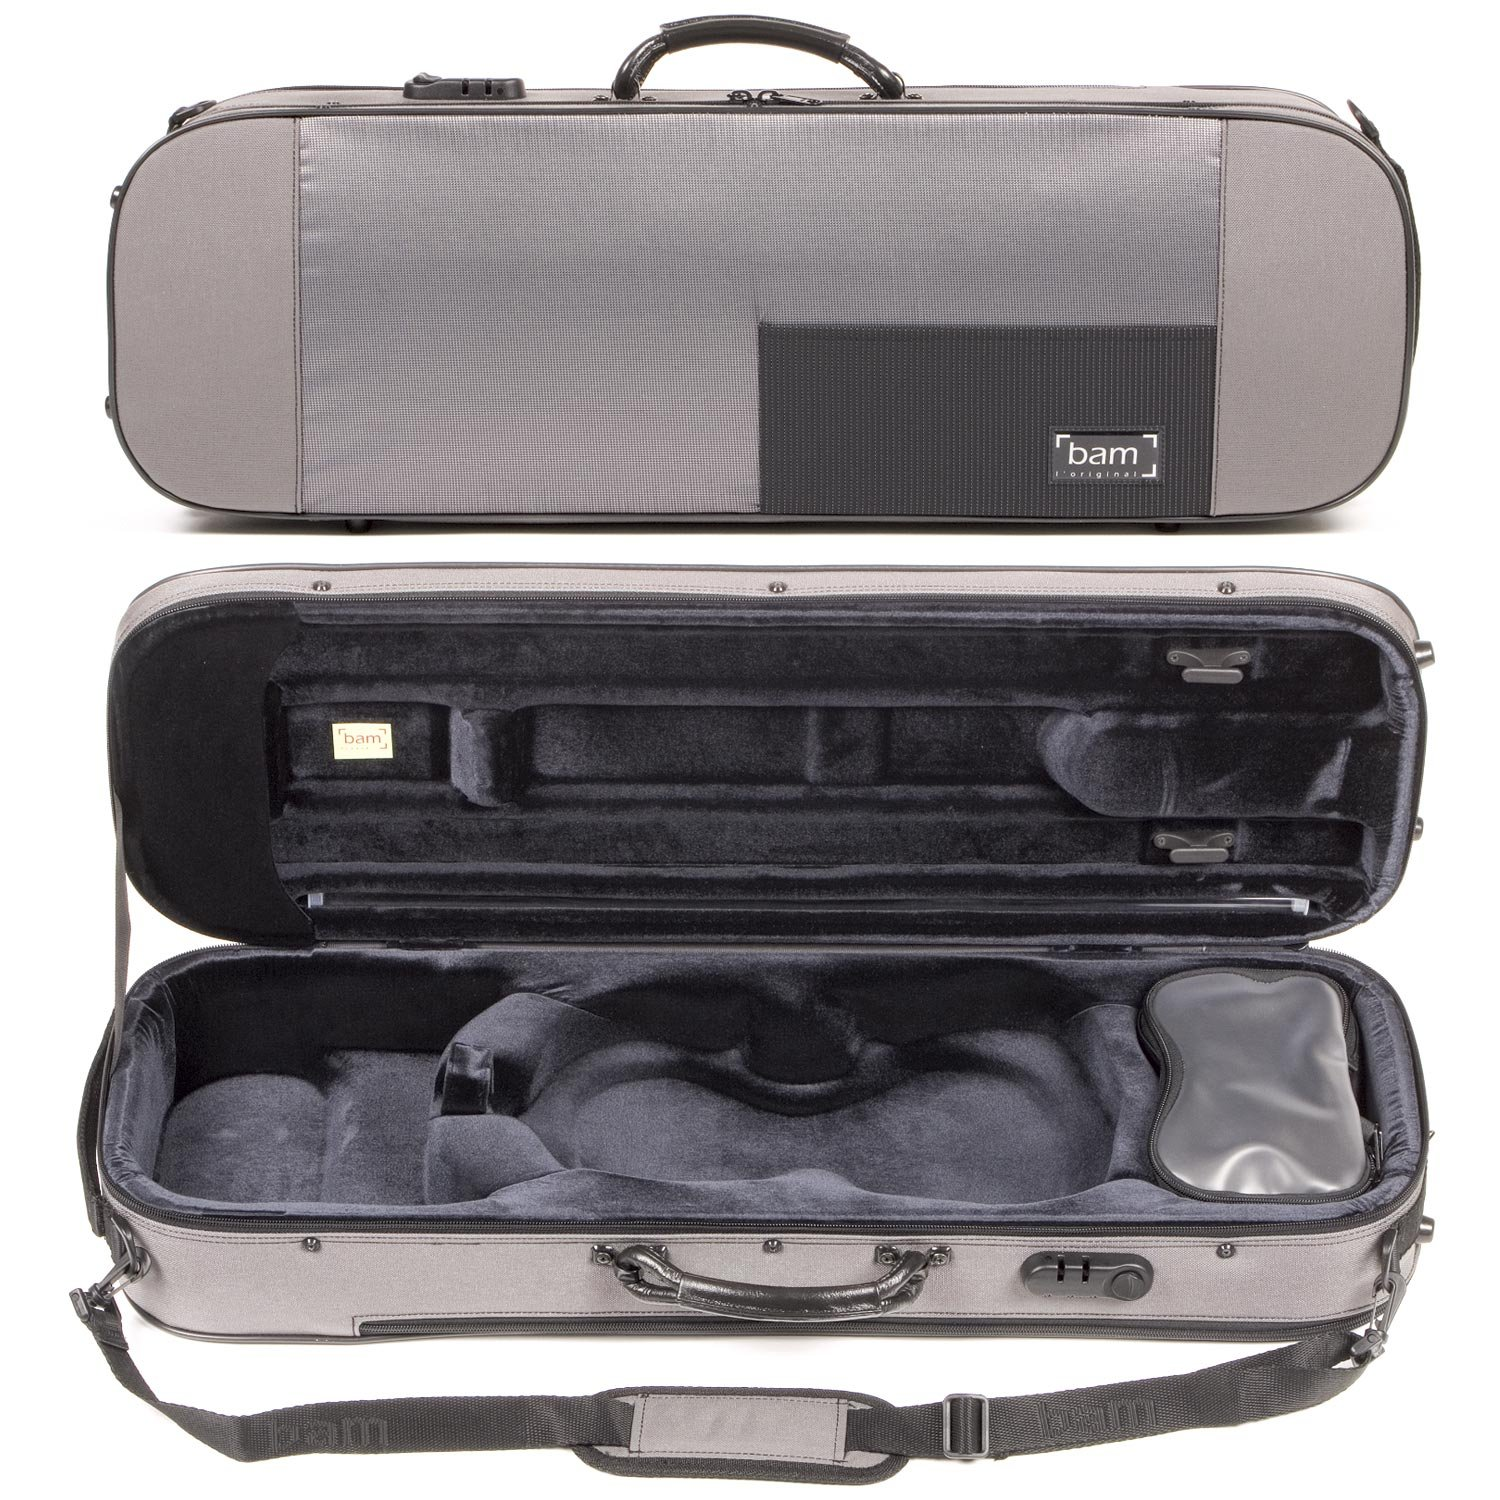 Top 17 Best Violin Cases (2020 Reviews & Buying Guide) 17